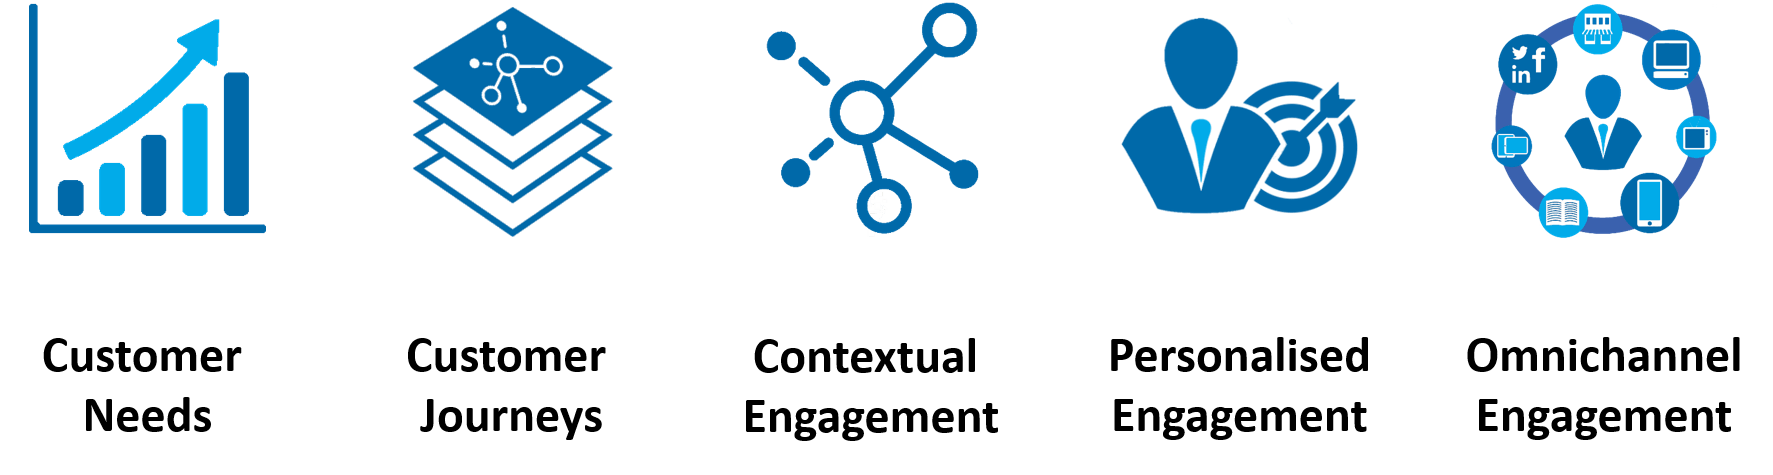 "Customer Needs > Customer Journeys > Contextual Engagement > Personalised Engagement > Omnichannel Engagement"" width=""960″ height=""257″></p> <p> </p> <p>A good interconnected retail experience is characterised by the following six principles:</p> <ul> <li><strong>Customer Needs: </strong>address the requirements of the customer clearly.</li> <li><strong>Customer Journeys: </strong>support the whole process, not just a single moment.</li> <li><strong>Contextual Engagement</strong> make engagement dependent on time, location, intent and recent experience events.</li> <li><strong>Personalised Engagements: </strong>make the experience relevant using insights and knowledge.</li> <li><strong>Omnichannel Engagement:</strong> enable a seamless transition between channels and make it easy for a consumer to resume the journey.</li> </ul> <p>In summary</p> <ul> <li><strong>Be There:</strong> whenever and wherever a user is shopping.</li> <li><strong>Be Useful:</strong> in a consumer moment of need, meet them by providing valuable information whether it is video tutorials, product reviews or the ability to purchase without friction.</li> </ul> <p> </p> <h2 class="